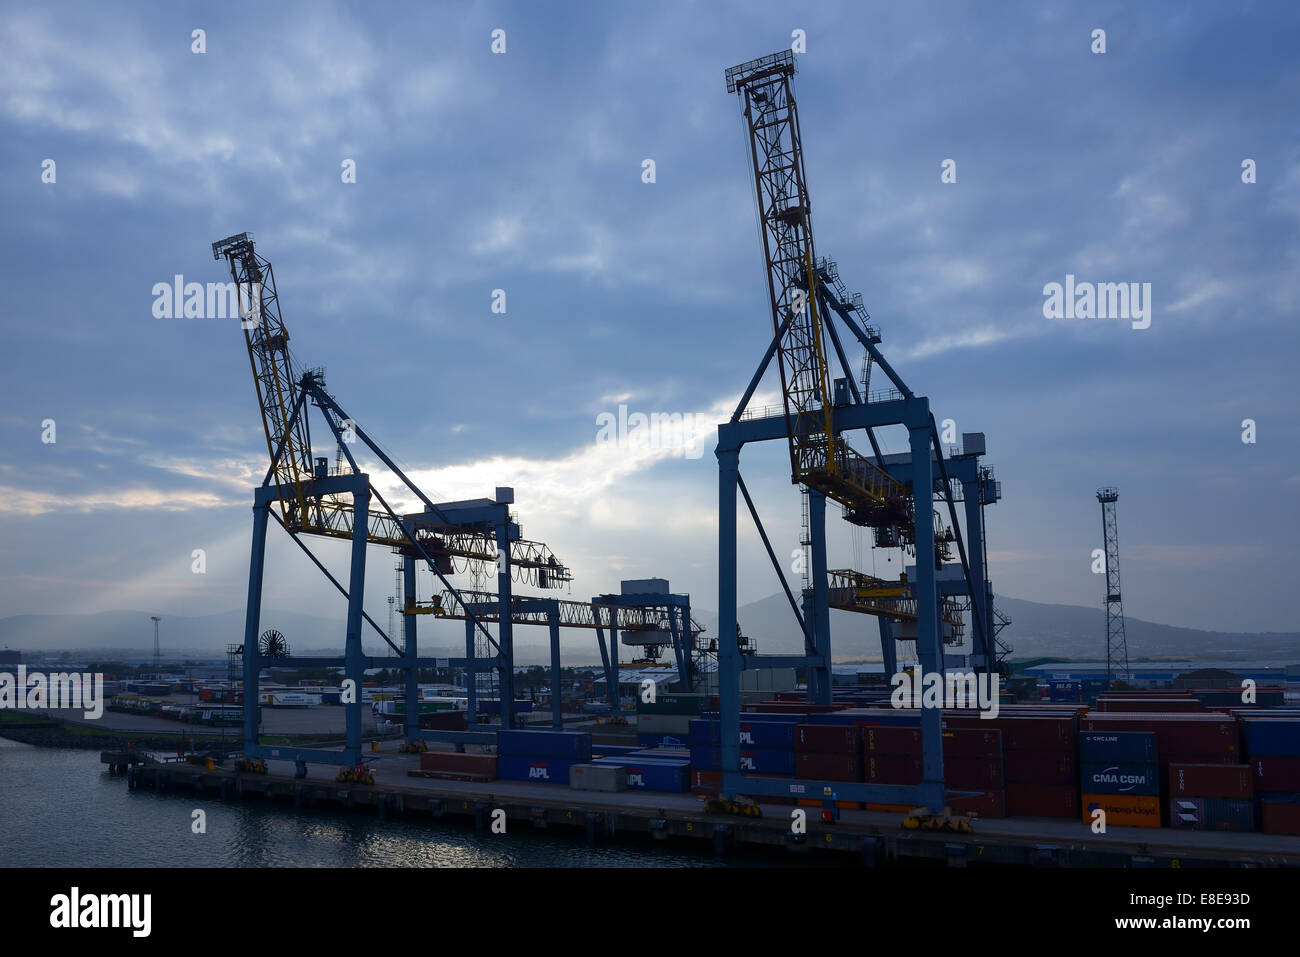 Gantry cranes and shipping containers at Belfast docks UK - Stock Image